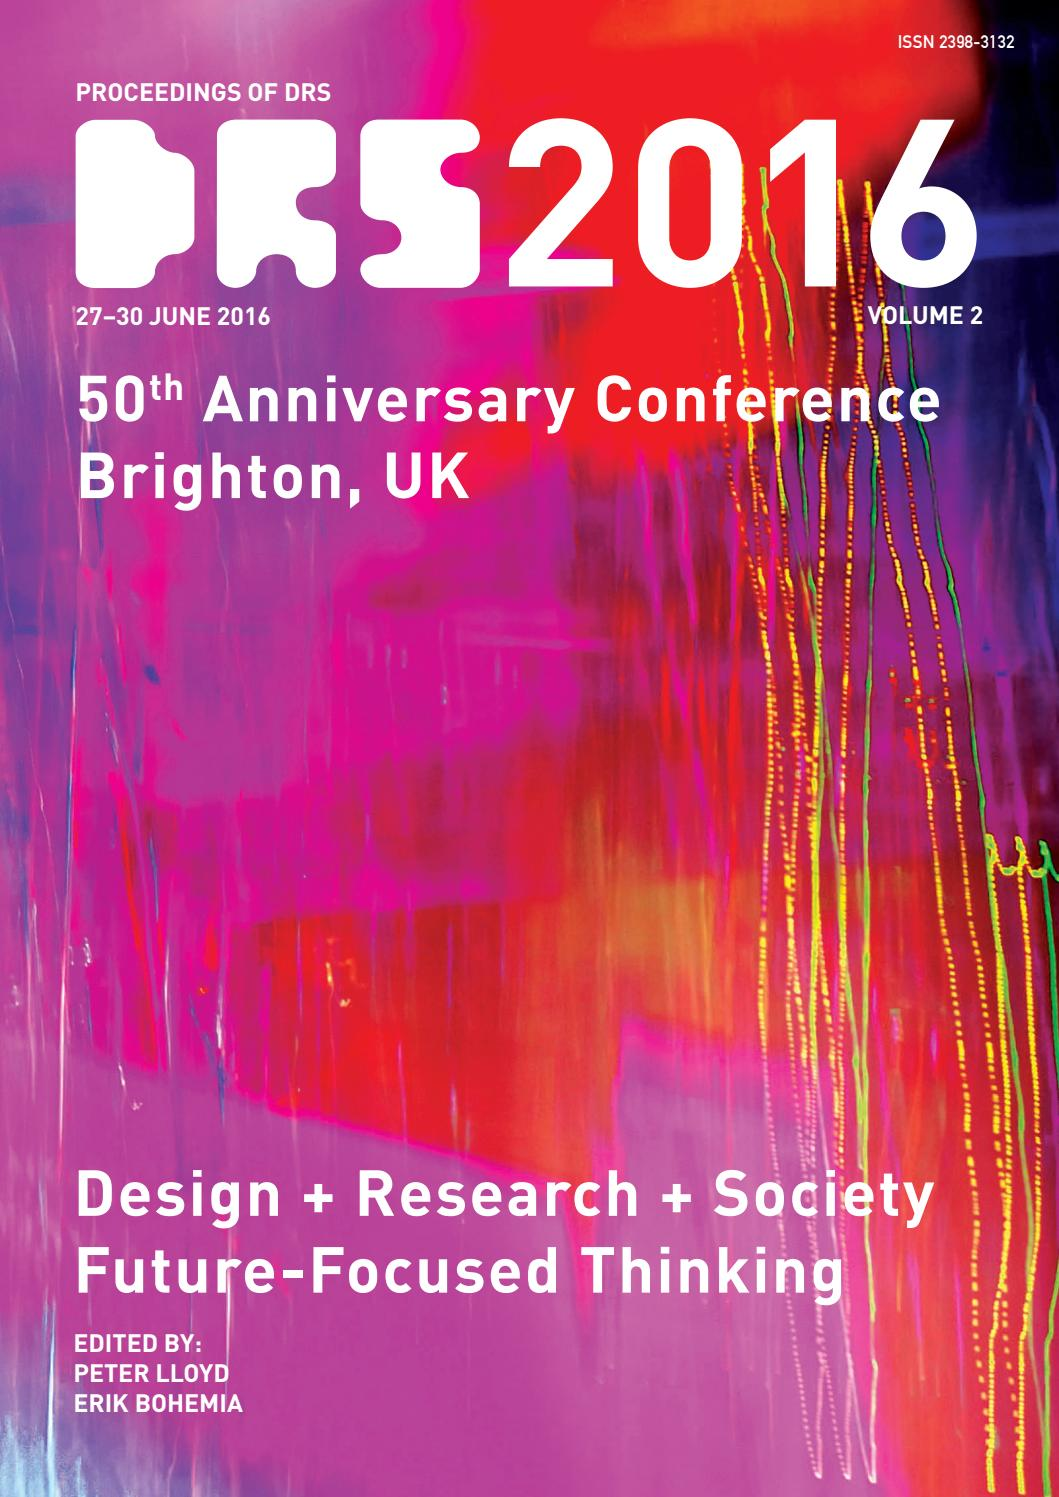 Proceedings of DRS 2016 volume 02 by Erik Bohemia - issuu